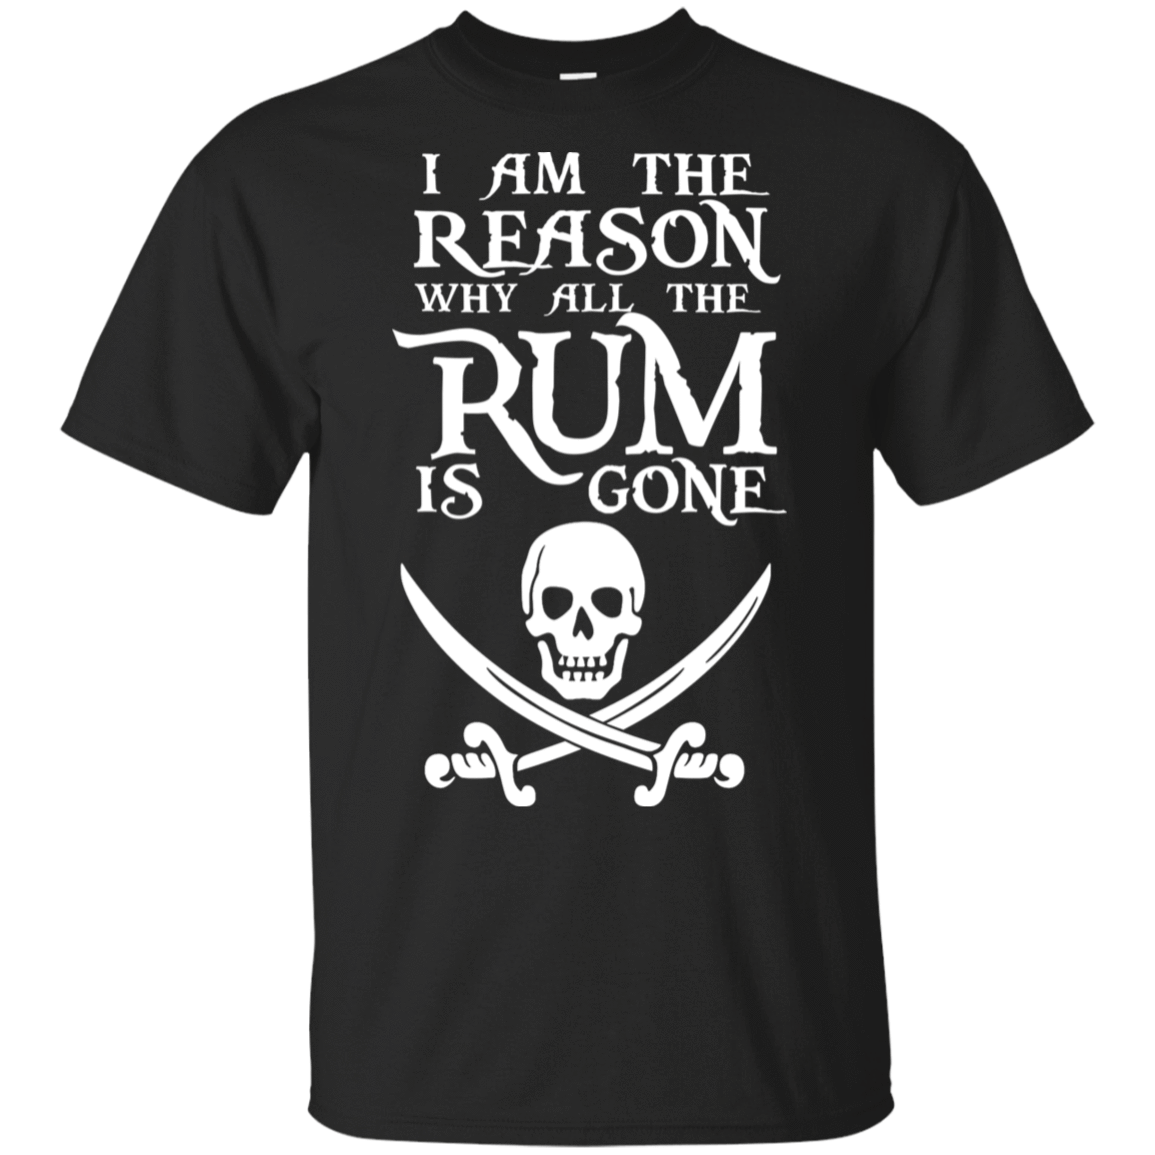 I Am The Reason Why All The Rum Is Gone 22-113-73425463-252 - Tee Ript